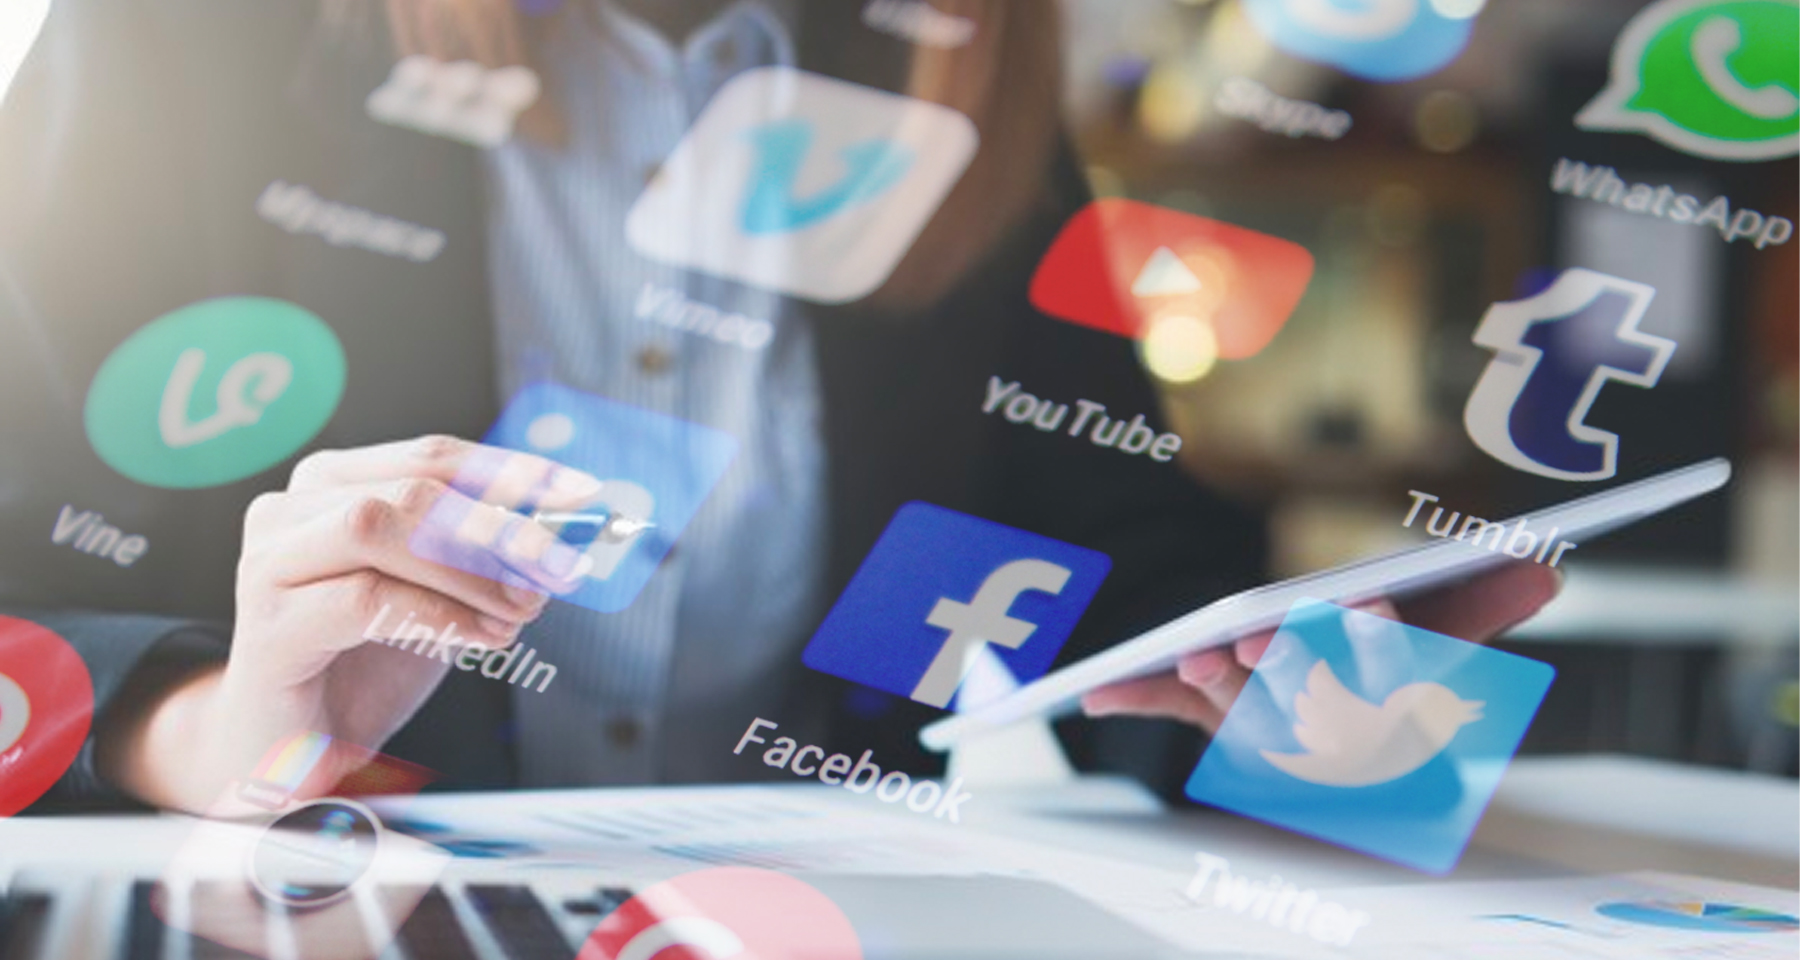 Dagens Nyheter's focus on engagement goes beyond Facebook likes